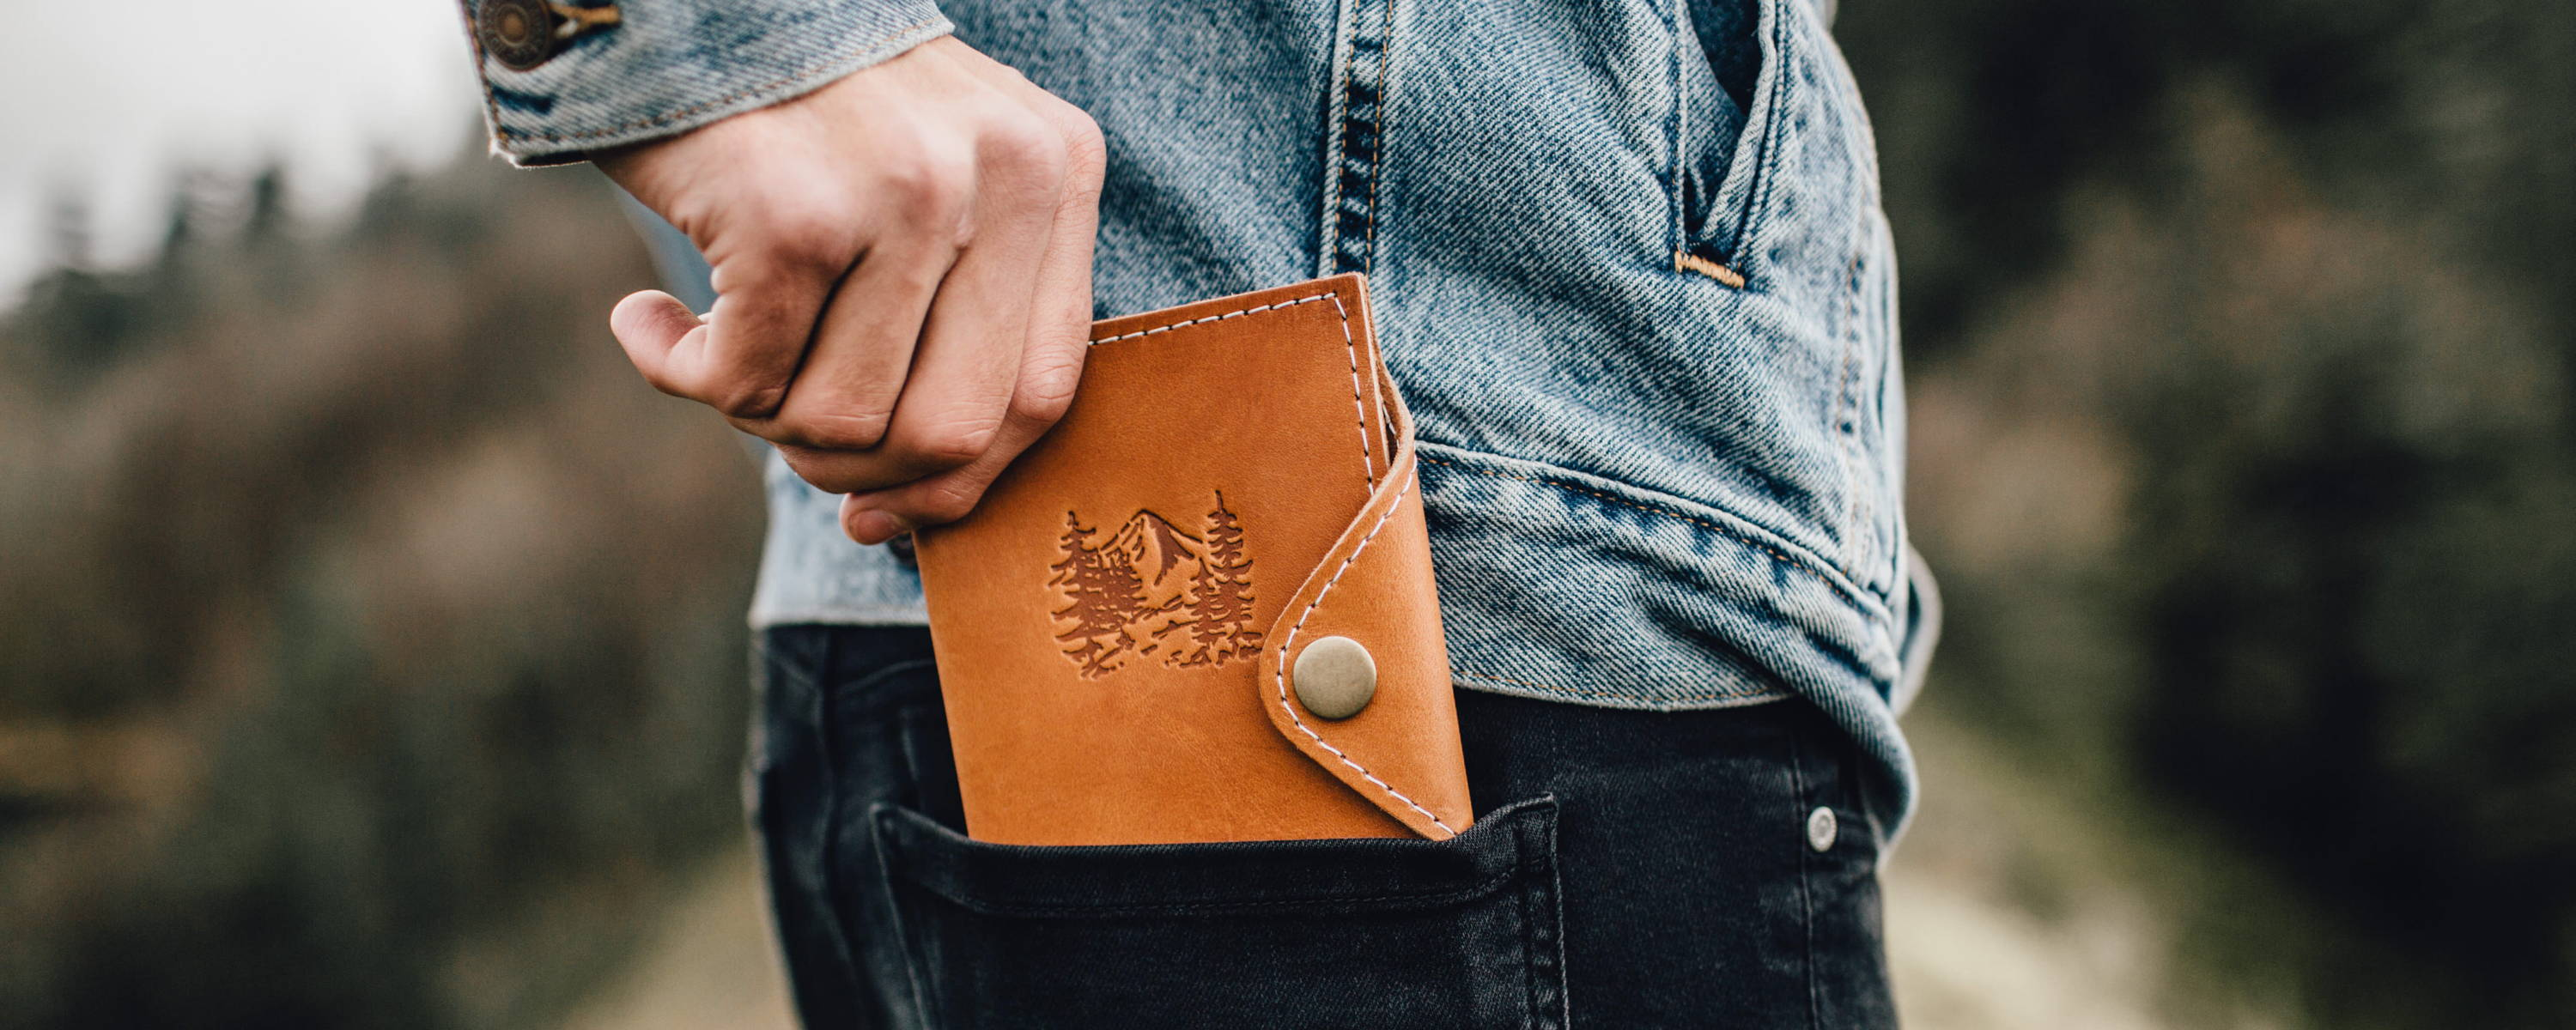 mans hand pulling leather snap journal out of his back pocket